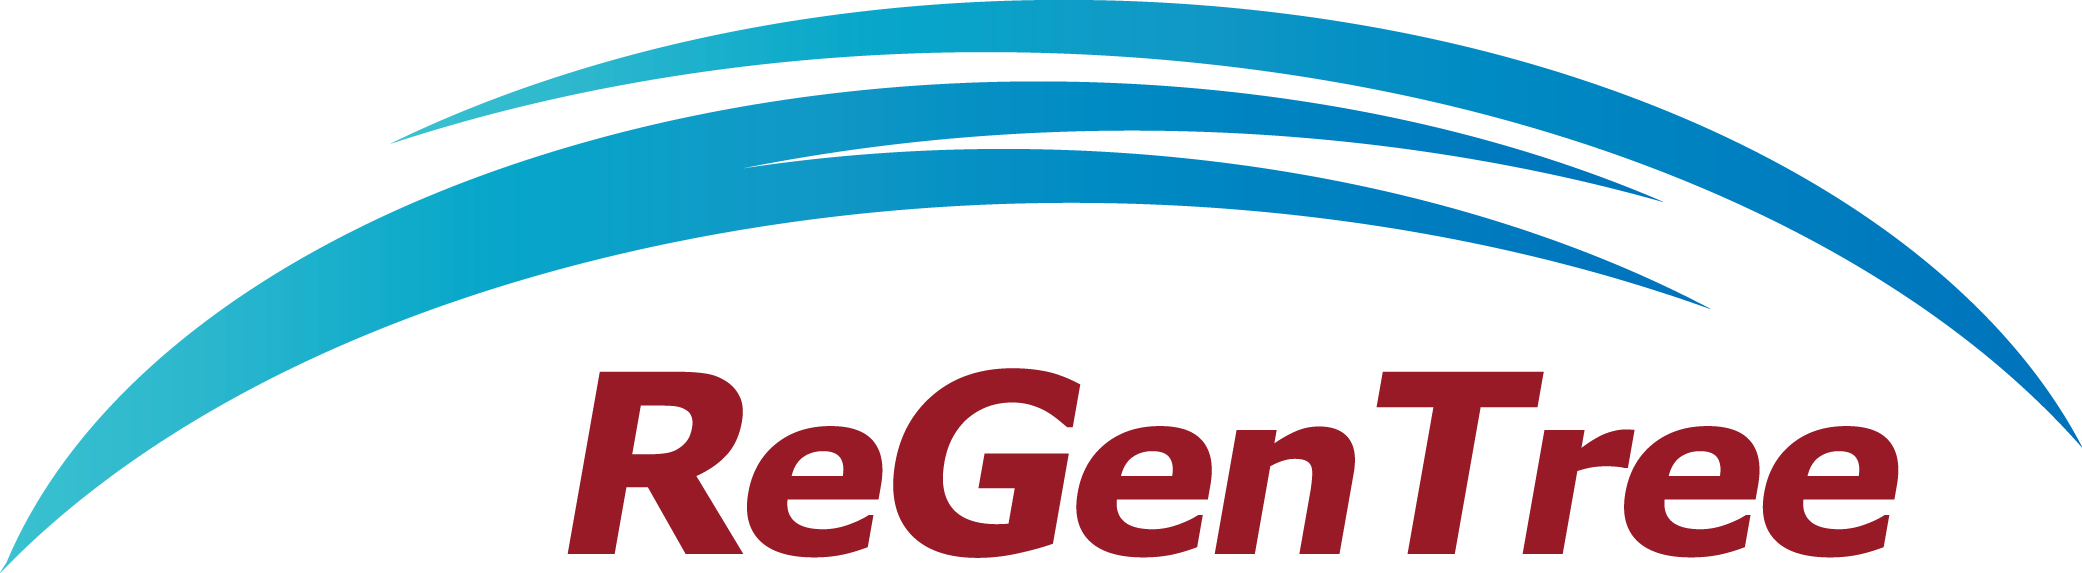 ReGenTree Announces Outcome of FDA Discussions for Development of RGN-259 for Dry Eye Syndrome